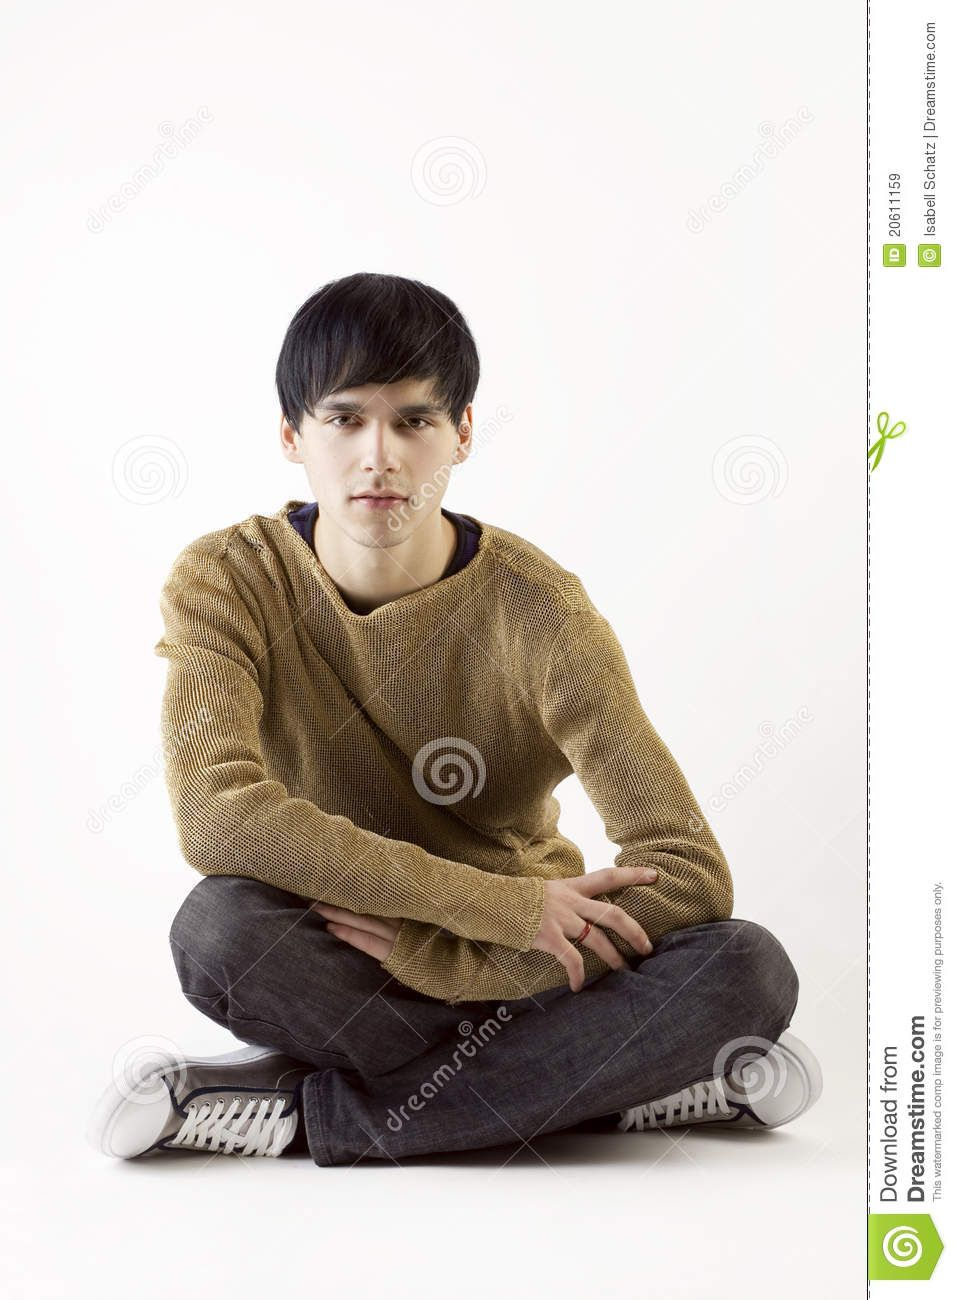 It's just a photo of Smart Male Sitting Poses Drawing